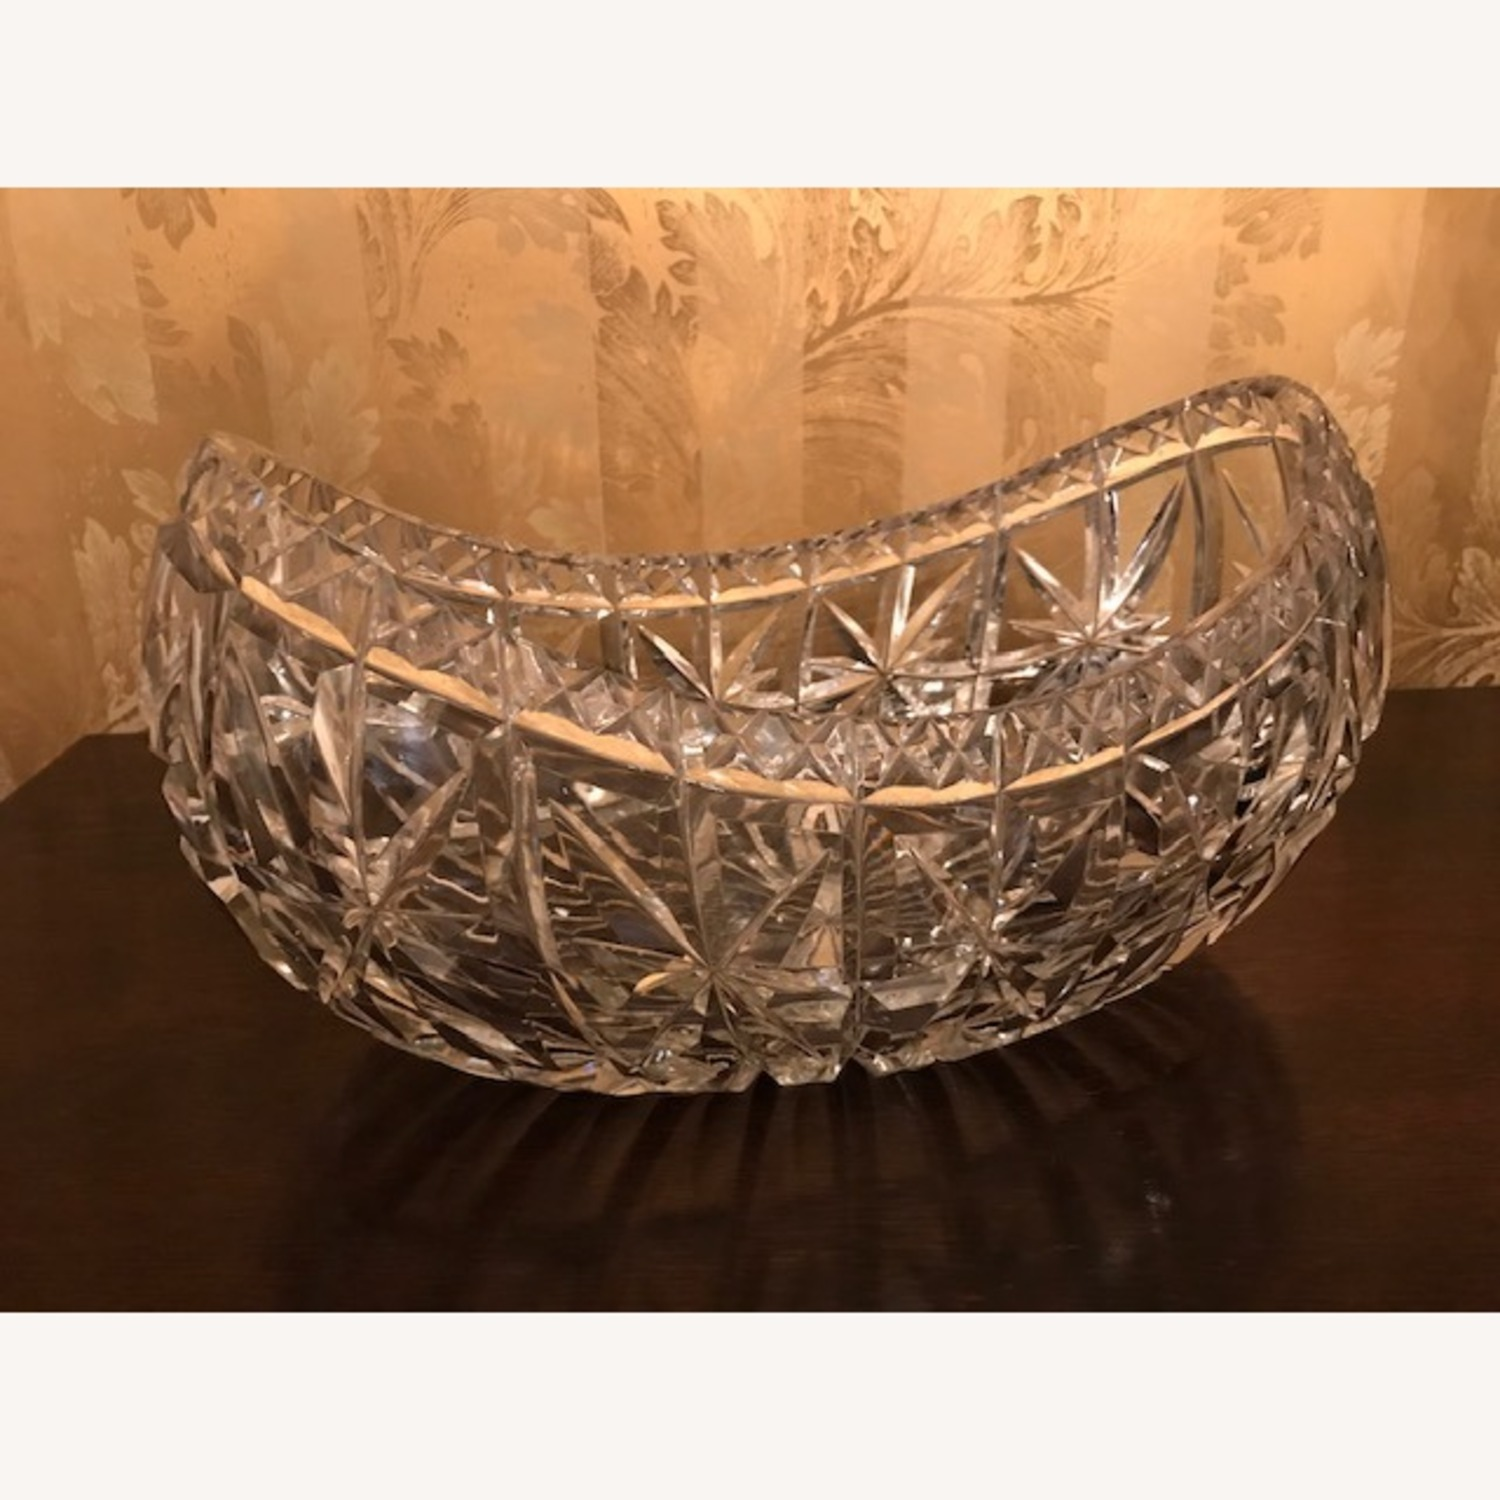 Enormous Antique 1800s Hand Cut Crystal Boat Bowl - image-3